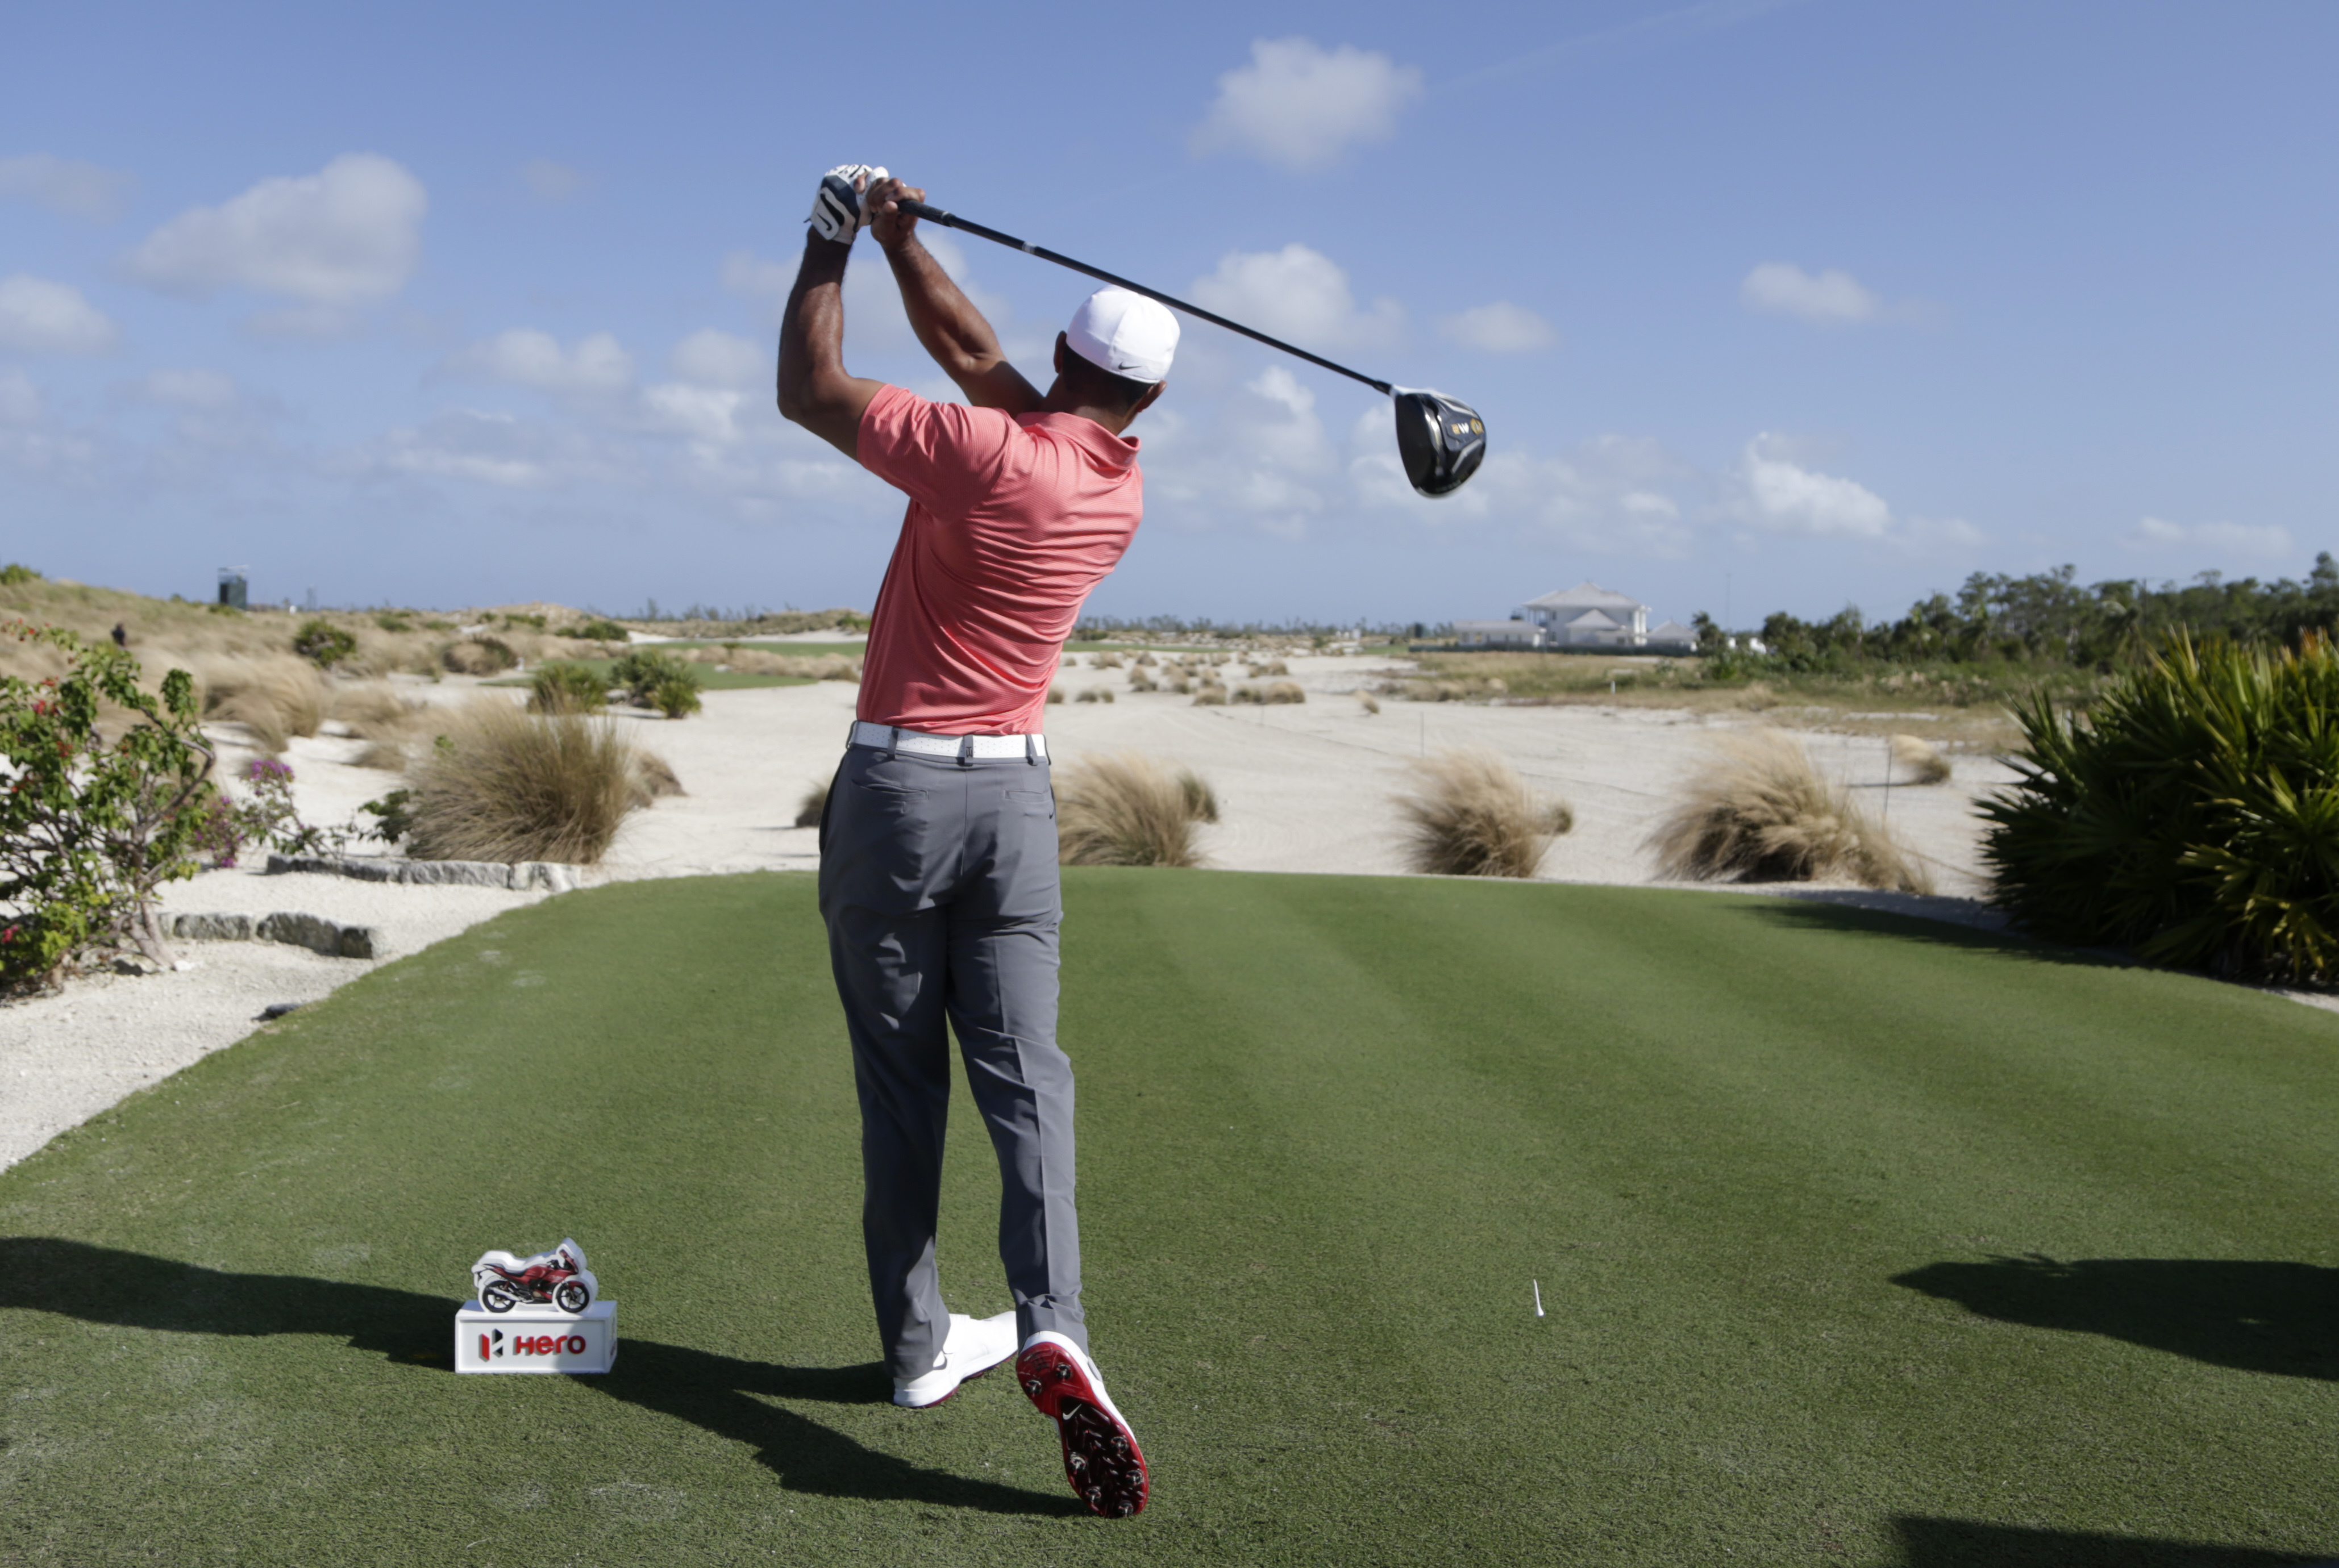 Tiger Woods hits from the sixth tee during the Pro-Am at the Hero World Challenge golf tournament, Wednesday, Nov. 30, 2016, in Nassau, Bahamas. (AP Photo/Lynne Sladky)